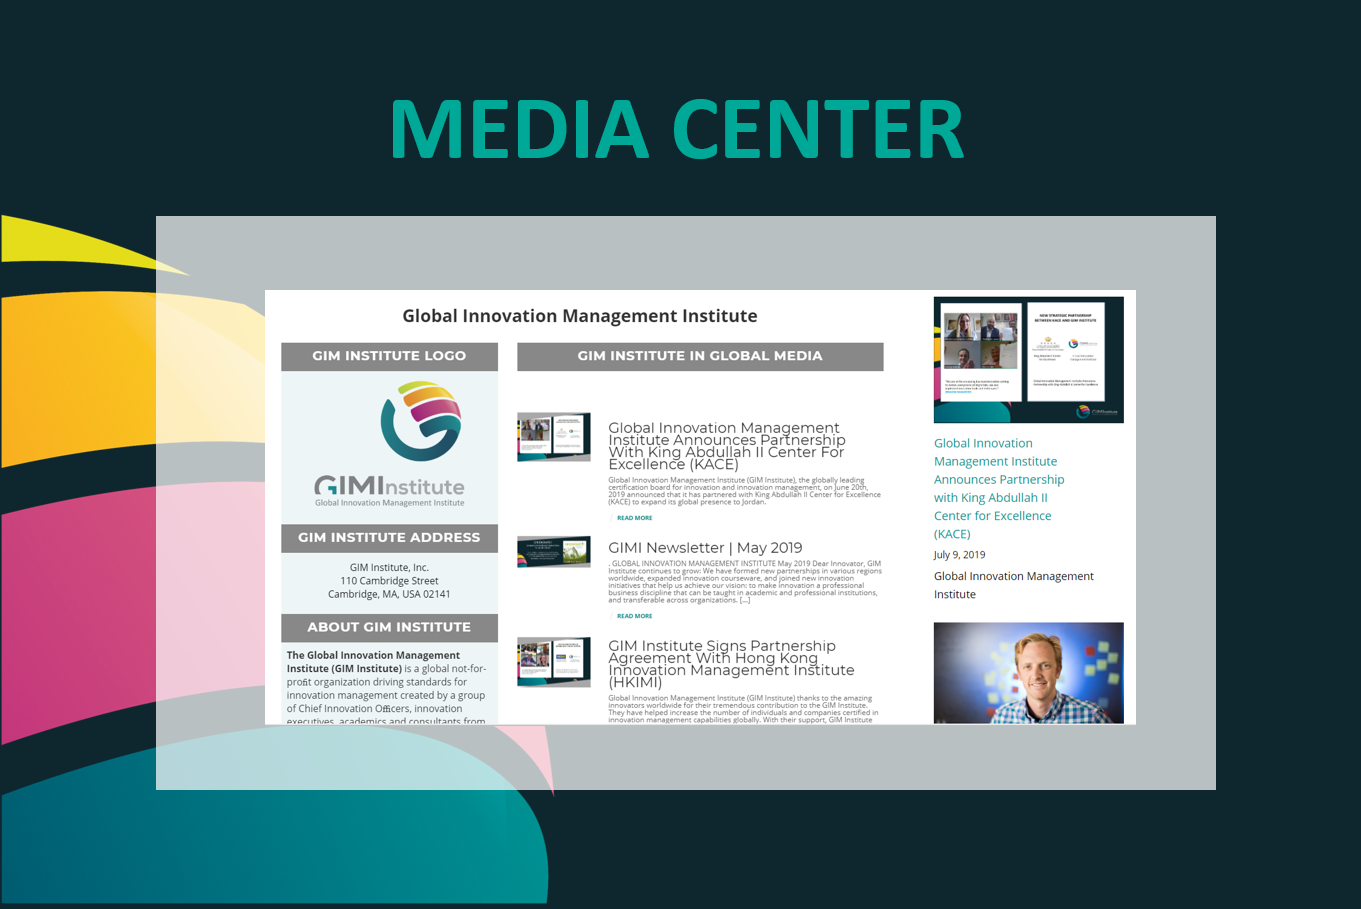 GIMI Media Center Innovation Certification